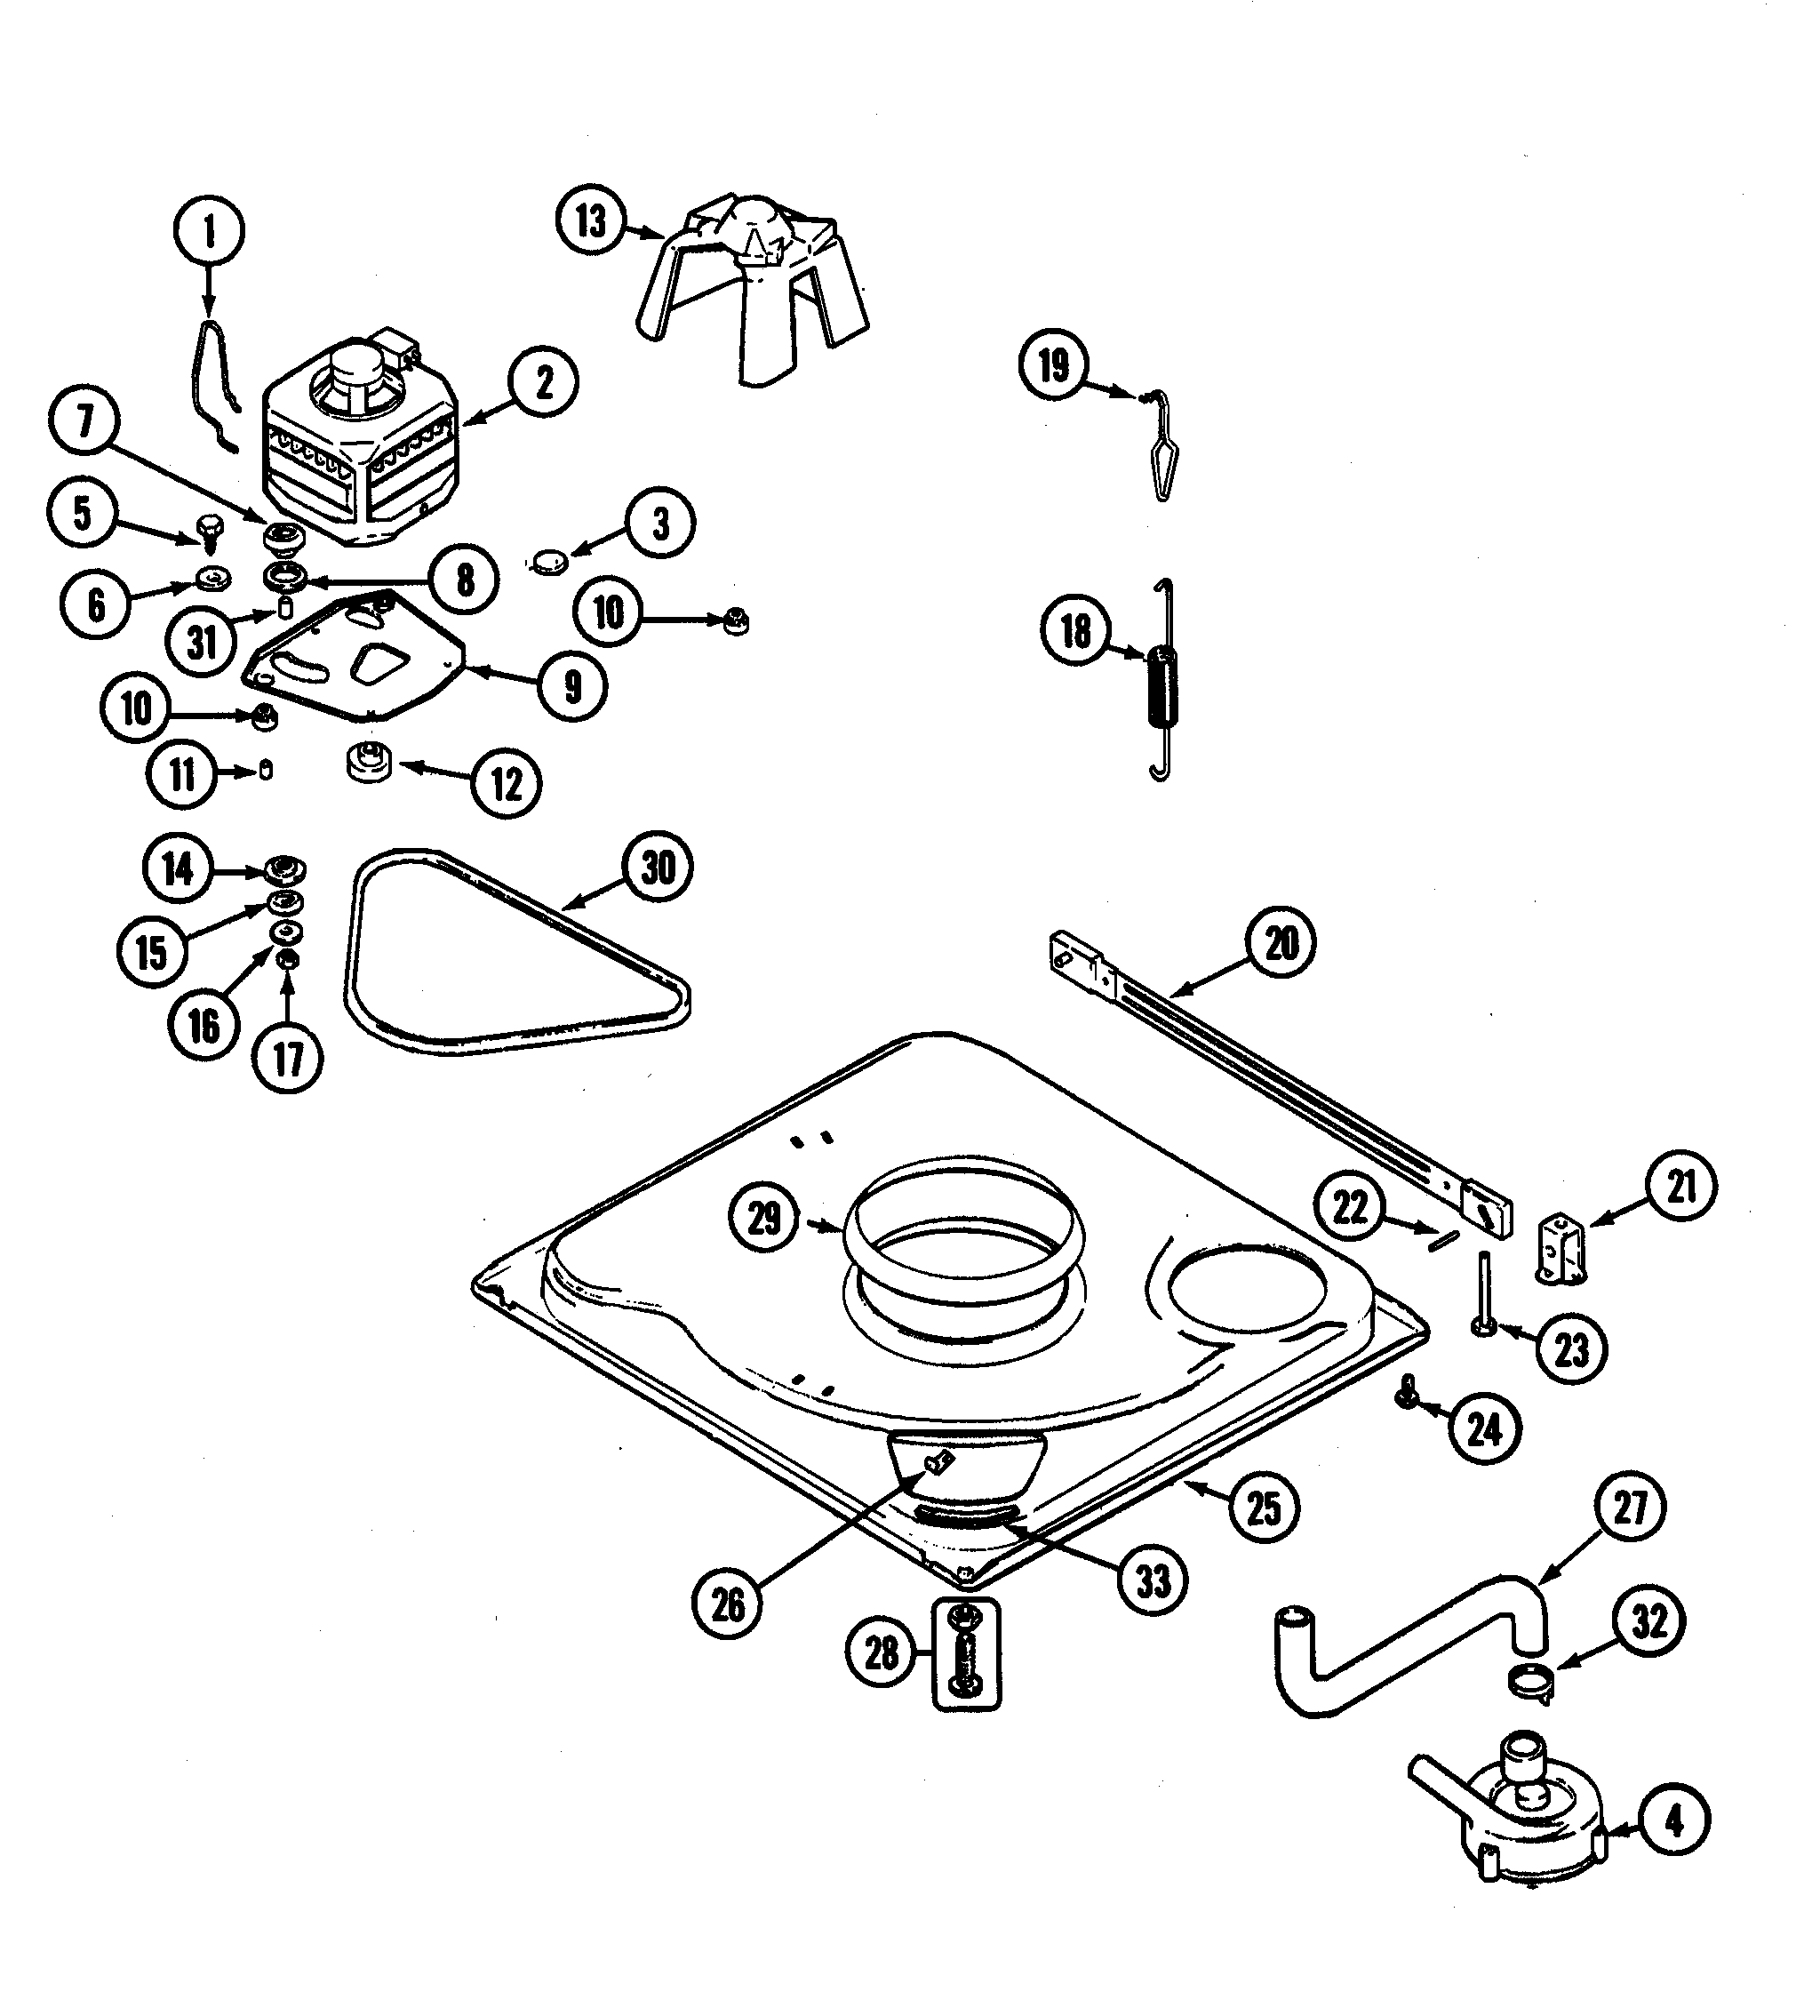 small resolution of diagram further maytag dishwasher parts diagram on whirlpool cabrio diagram likewise whirlpool cabrio washer parts diagram further